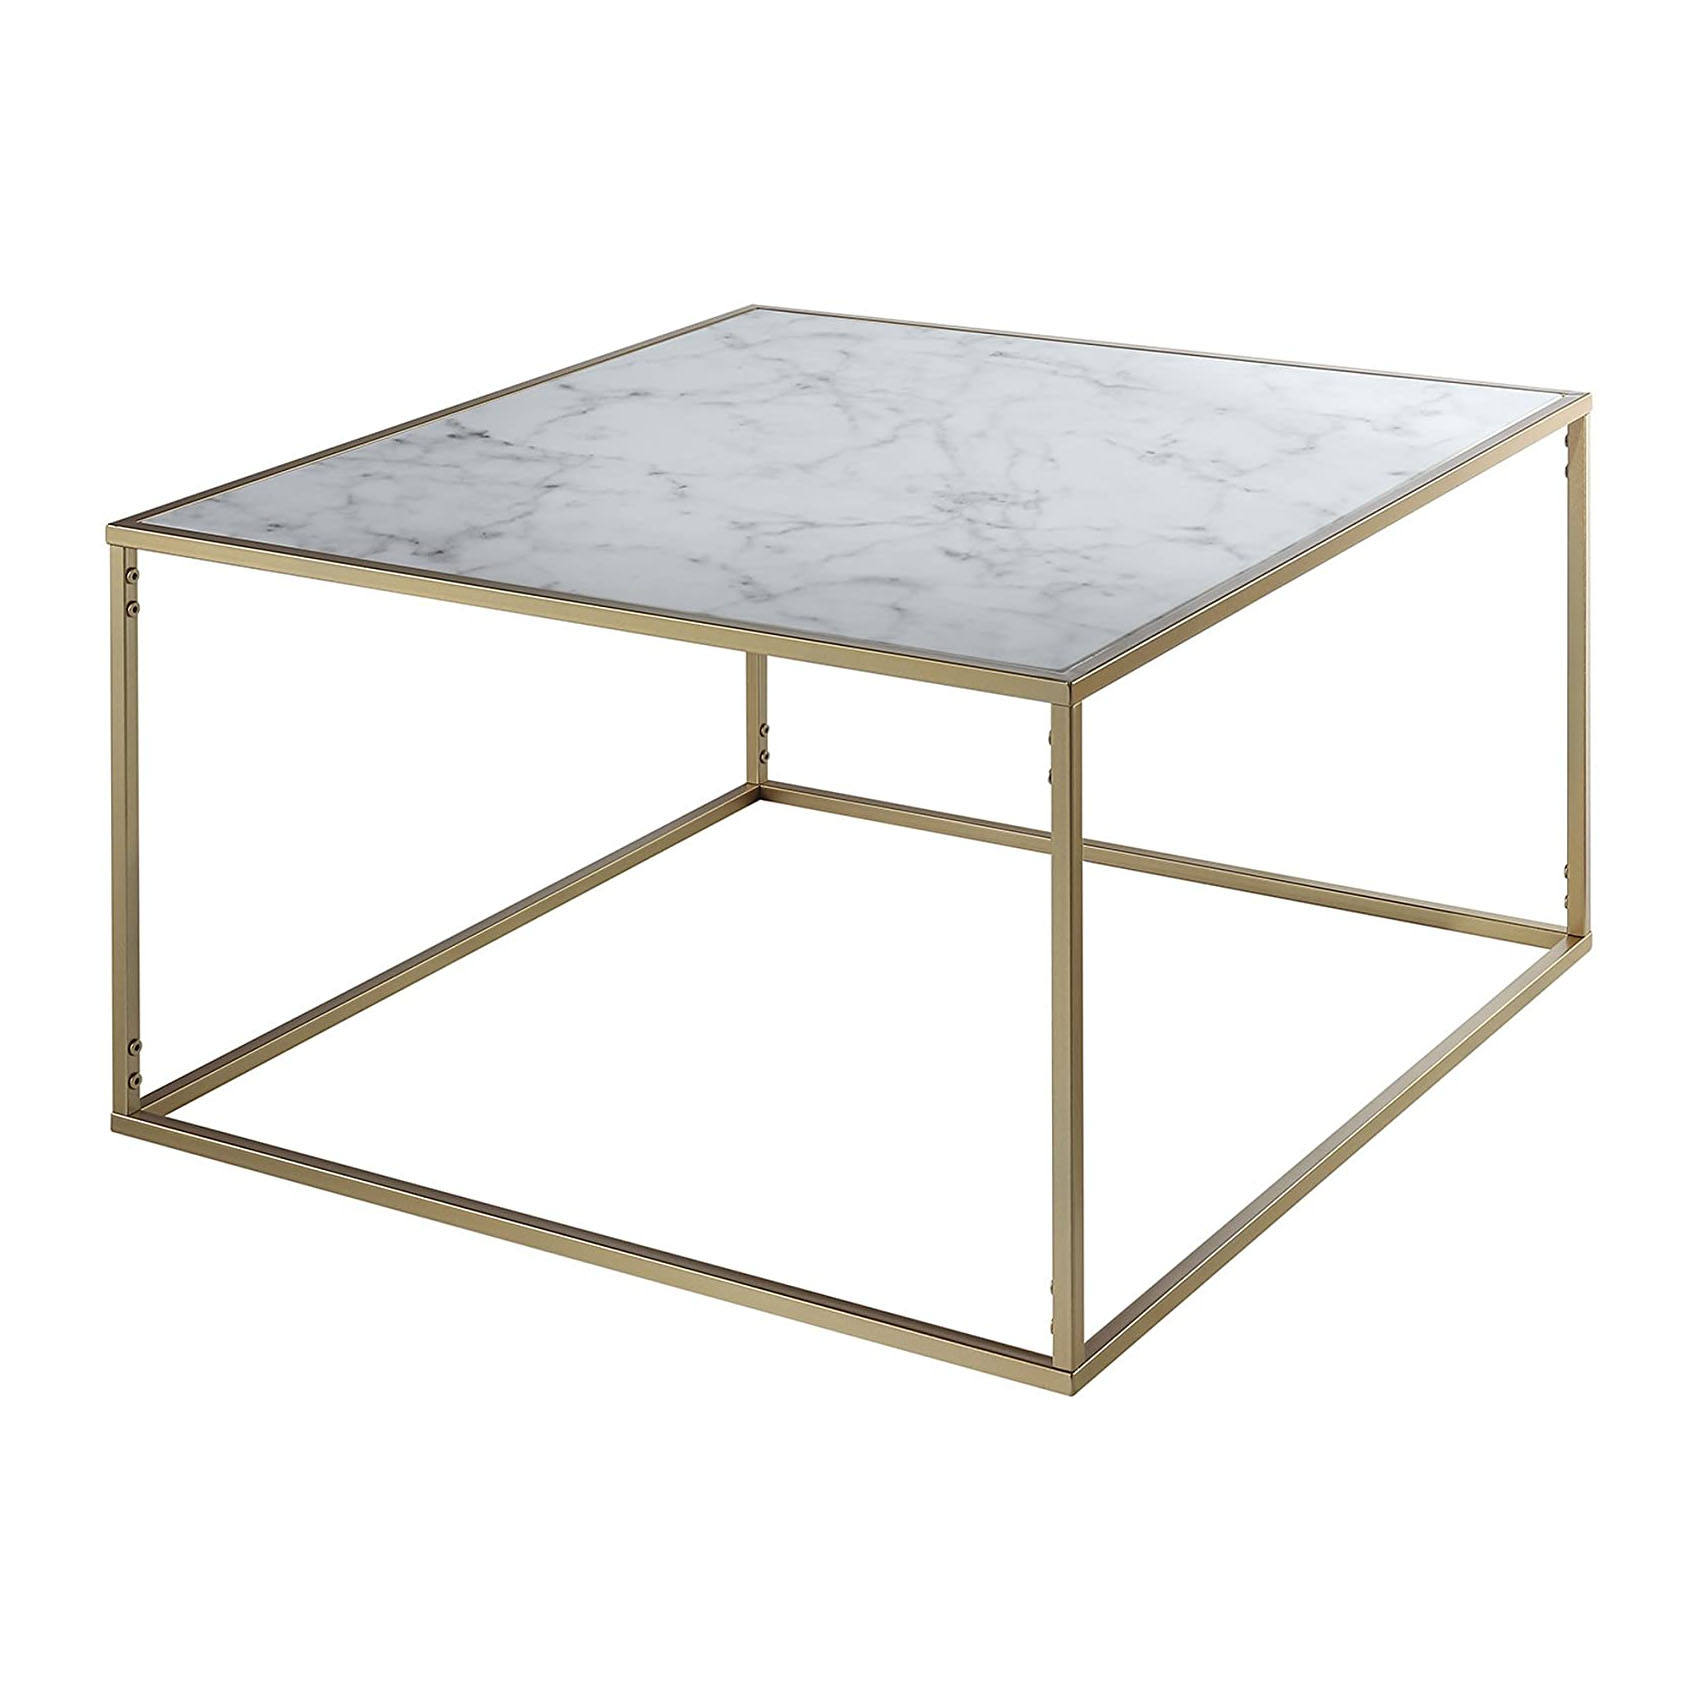 Moderne Faux Marmer Vierkante Cocktail Tafel <span class=keywords><strong>Goud</strong></span> Metalen Frame Salontafel <span class=keywords><strong>Accent</strong></span> Tafel Voor Woonkamer